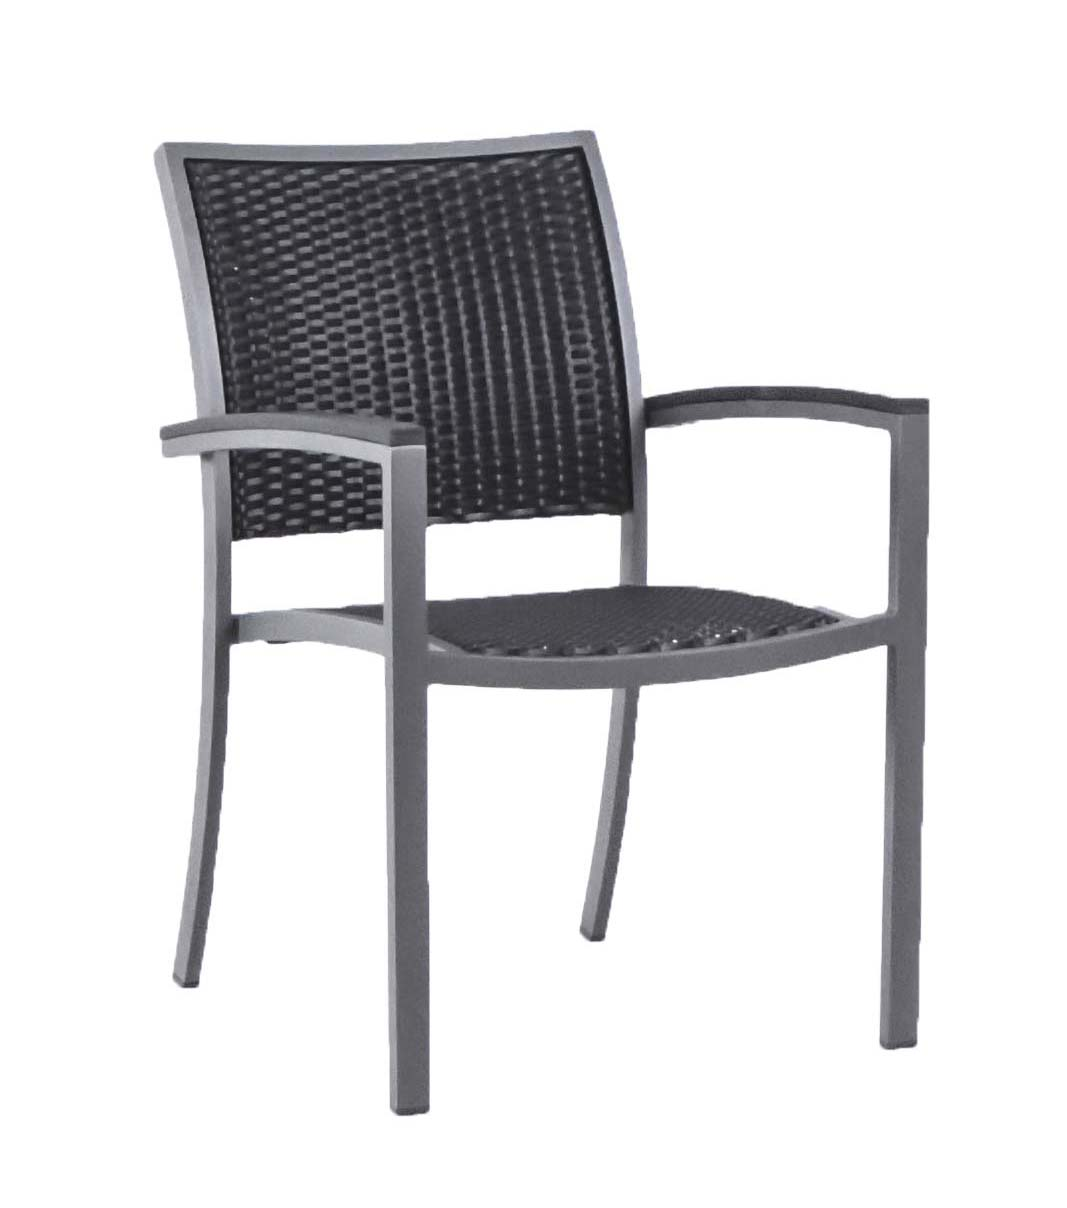 "872721 Ochi Arm Chair  24.4"" x 25.2"" x 35.8"""